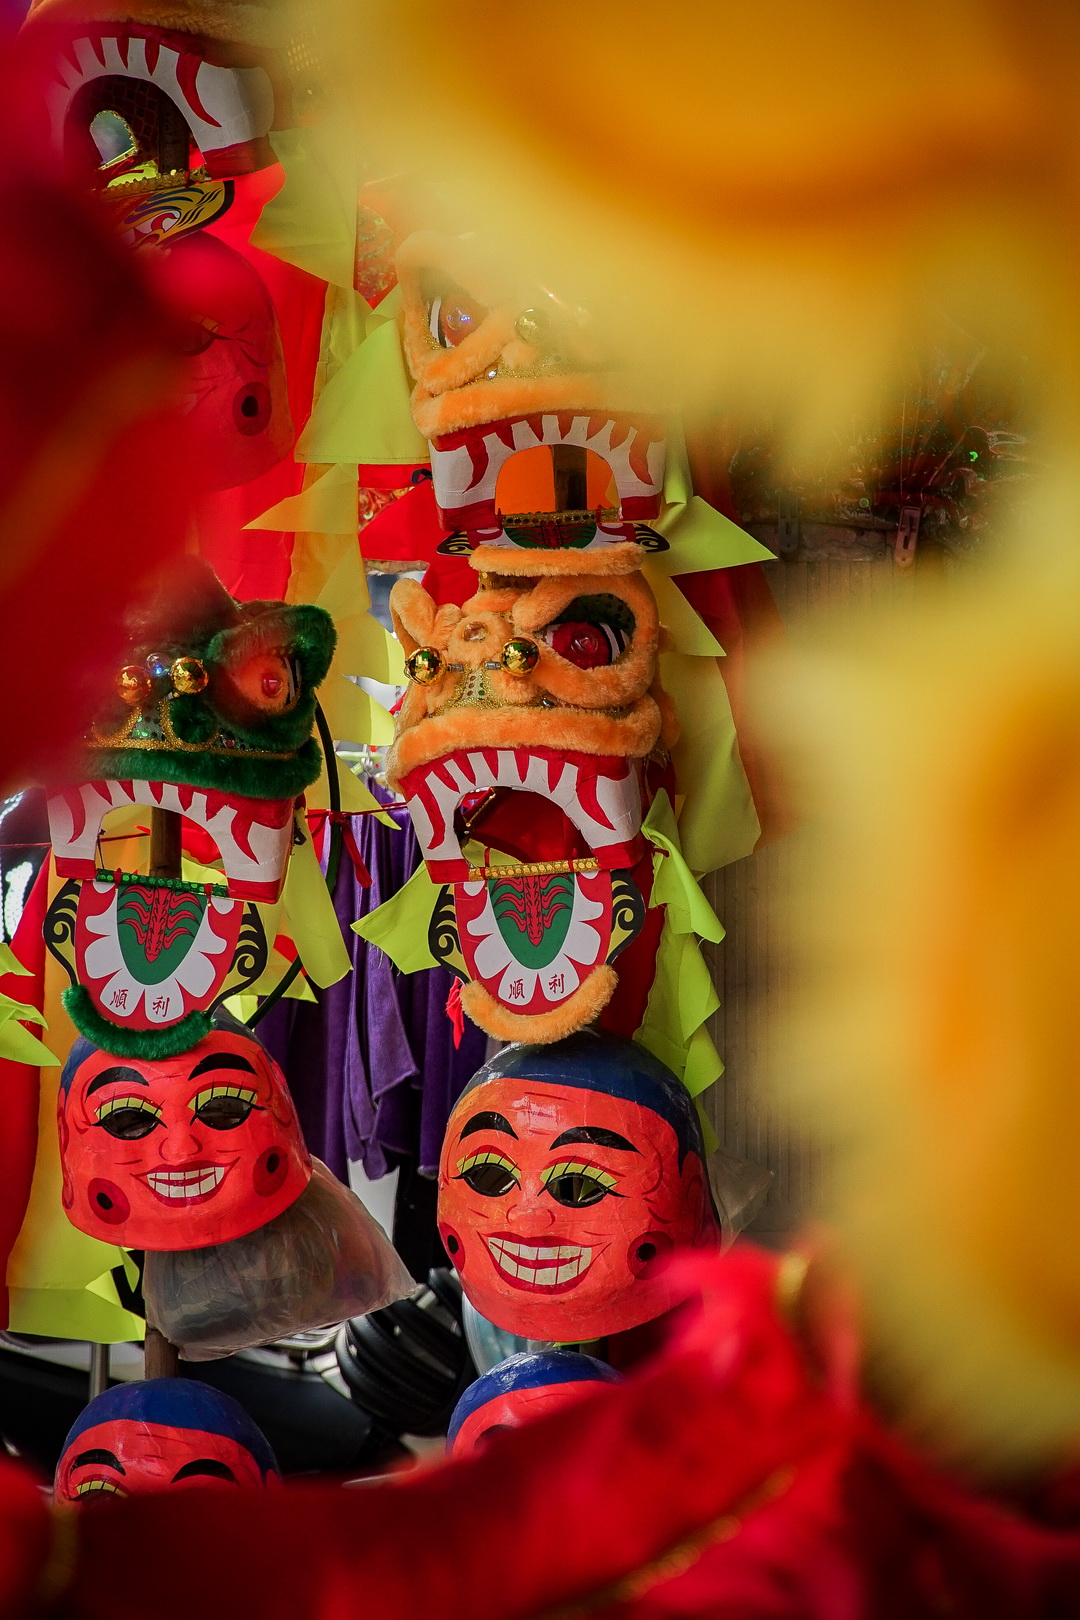 A photo from Nguyen took in Saigon under the theme of Tet (Vietnamese Lunar New Year) celebrations